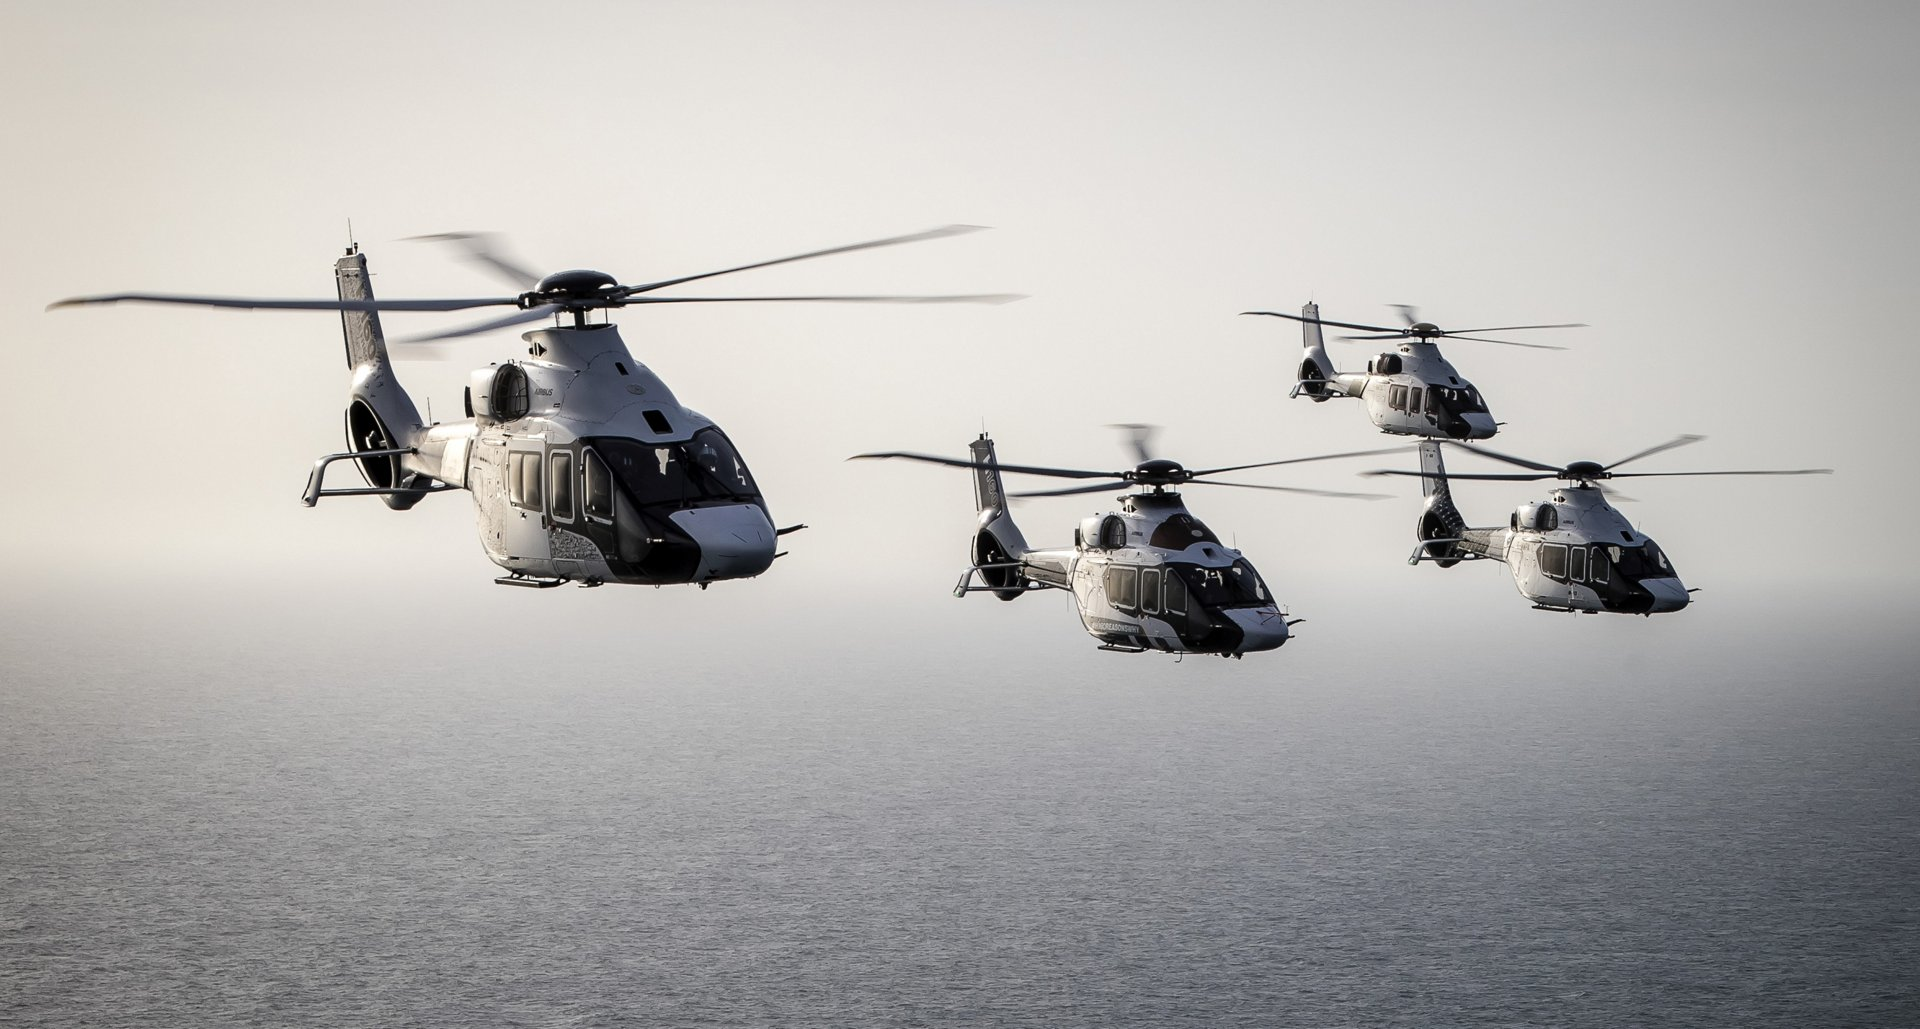 Airbus Helicopters and Shell Aircraft have been working closely in order to put the H160 into service for offshore transportation.